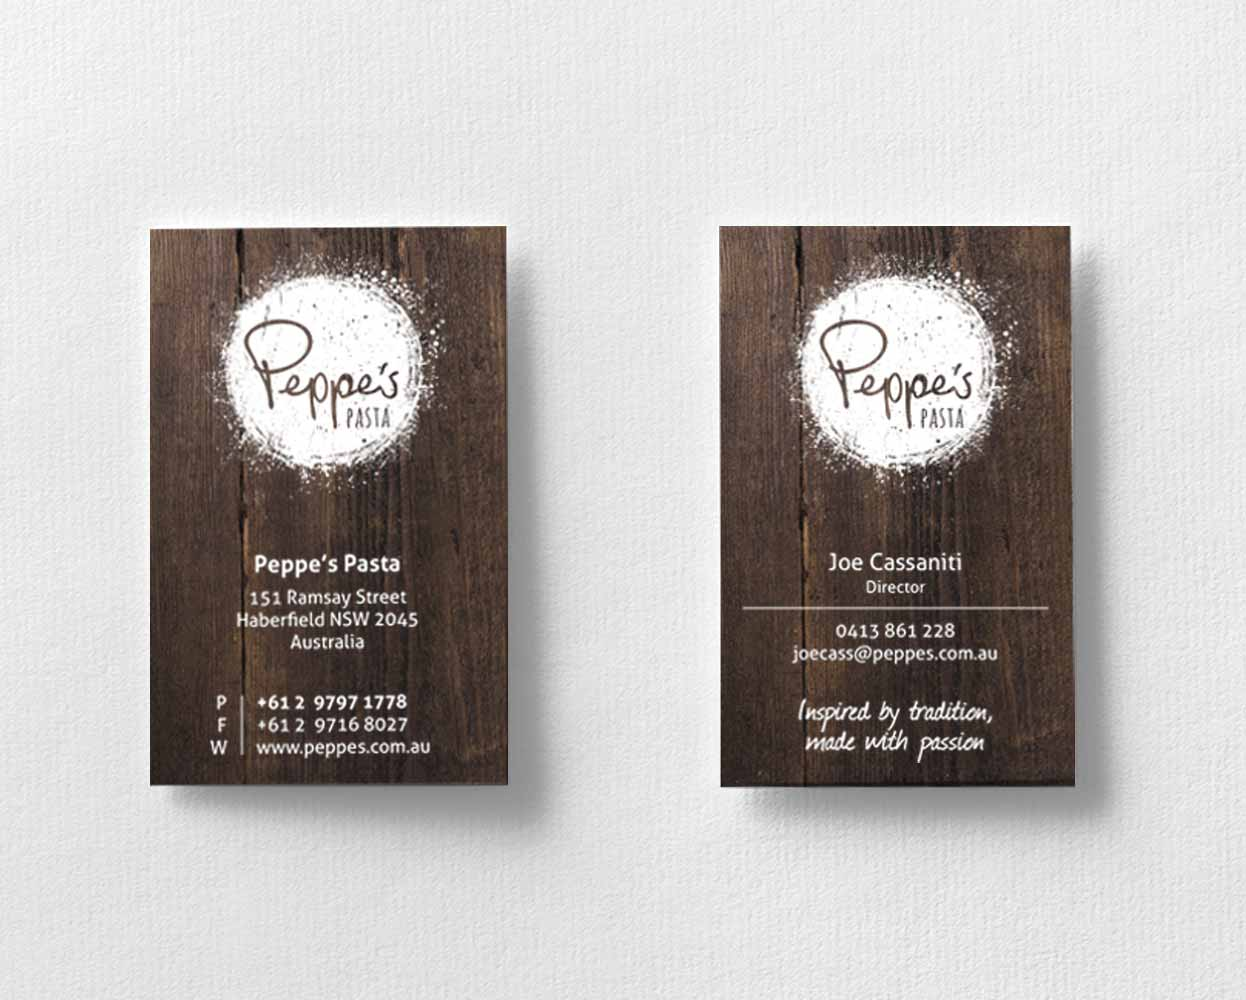 Peppes_Pasta_Branding_Business_Cards